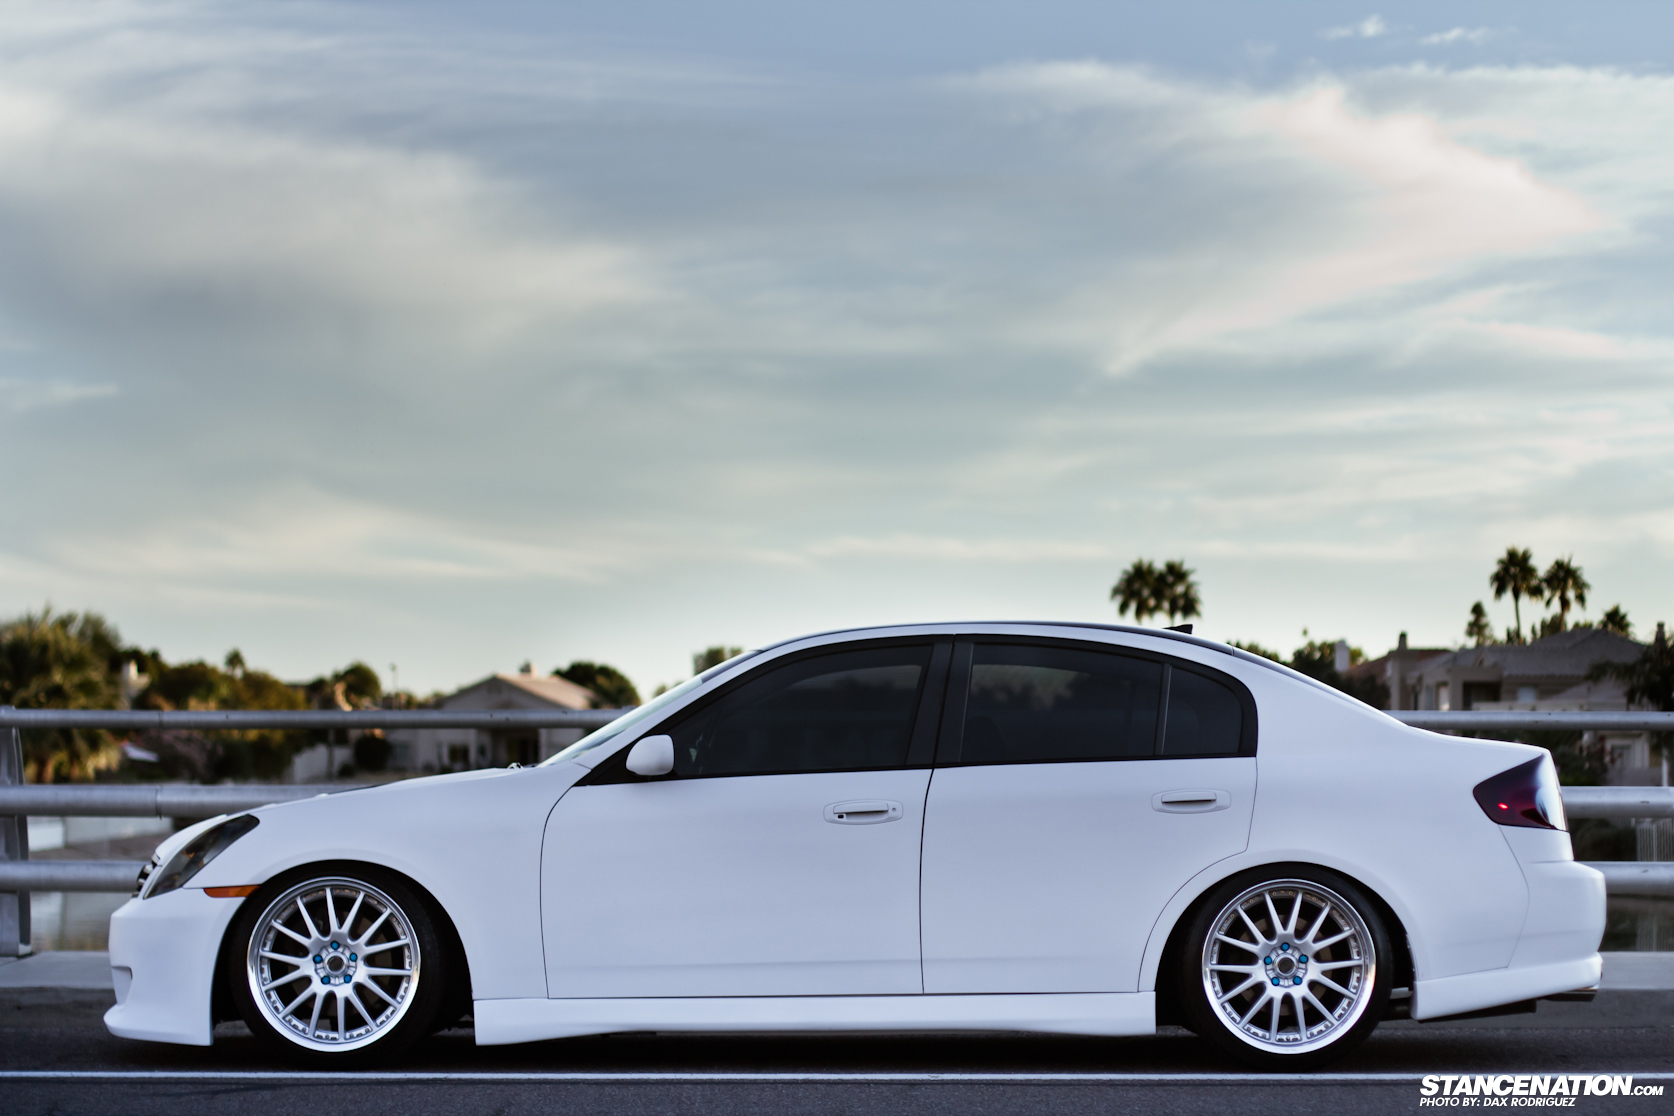 So Fresh Joshua S Clean Infiniti G35 Sedan Stancenation Form Function